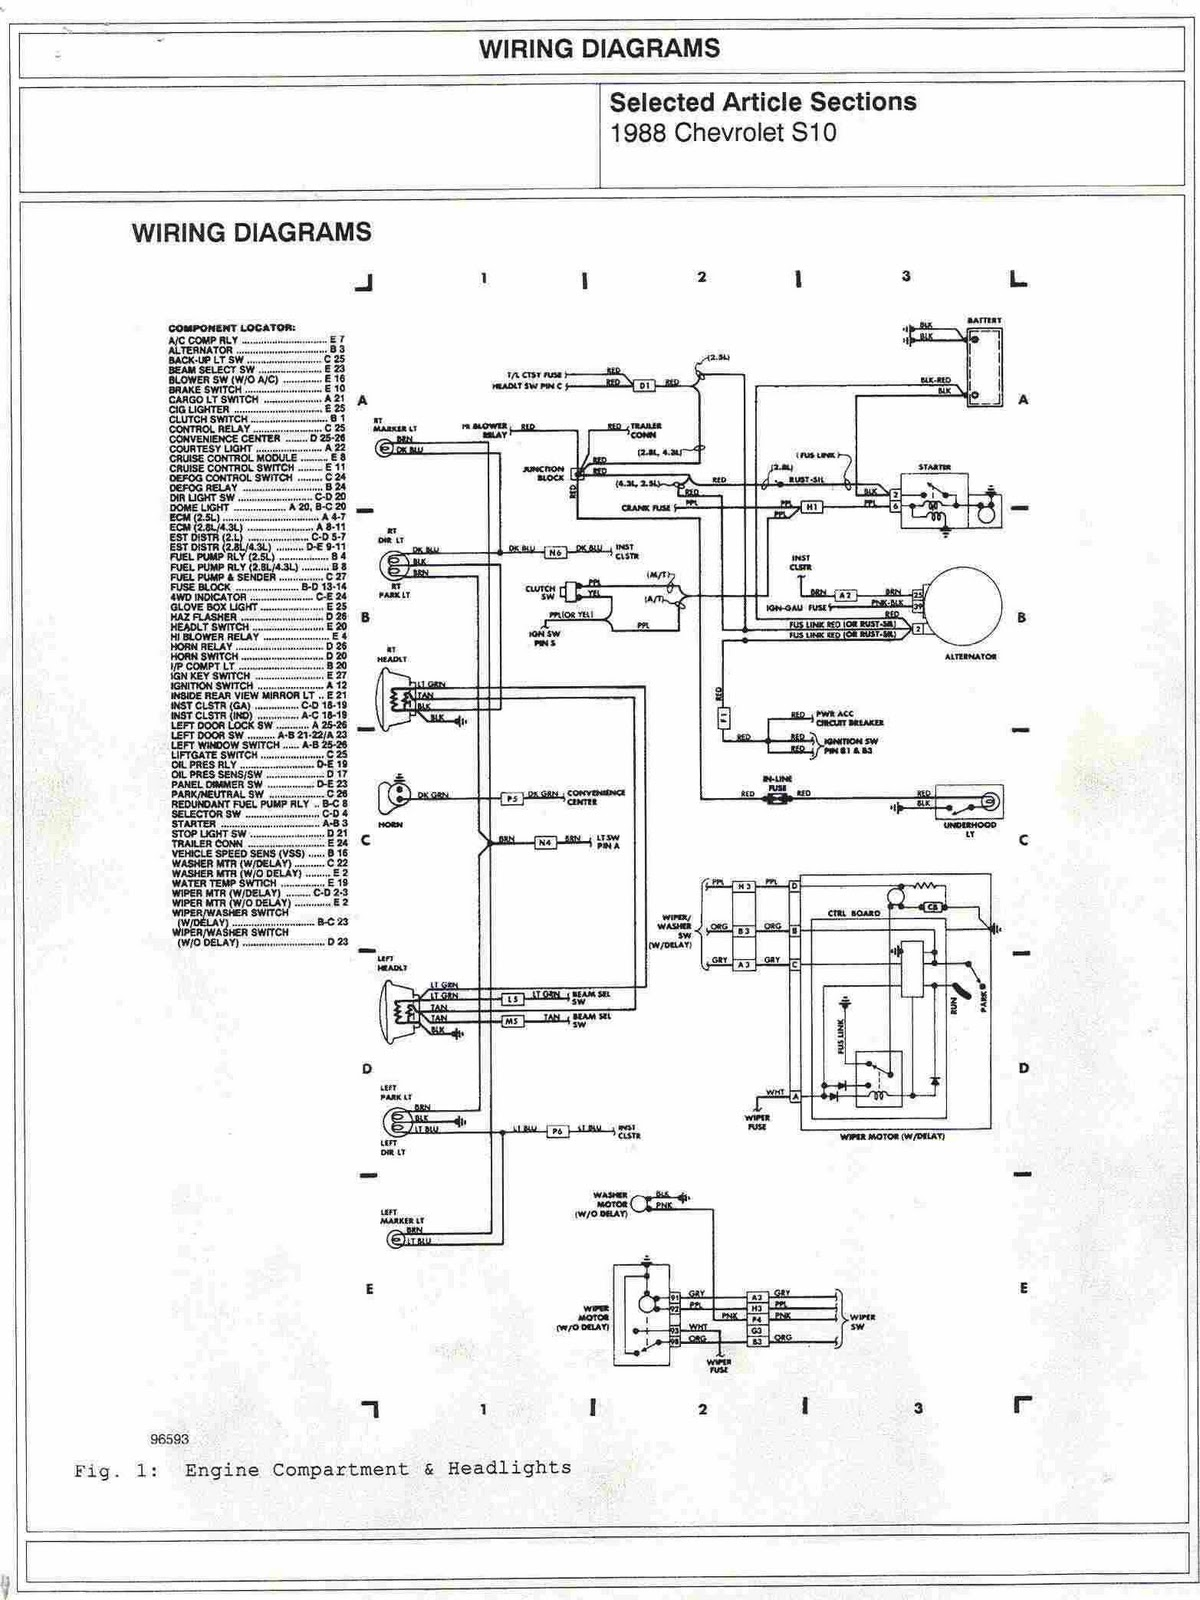 gm radio wiring diagram 1988 1988 s10 radio wiring diagram 1988 wiring diagrams online